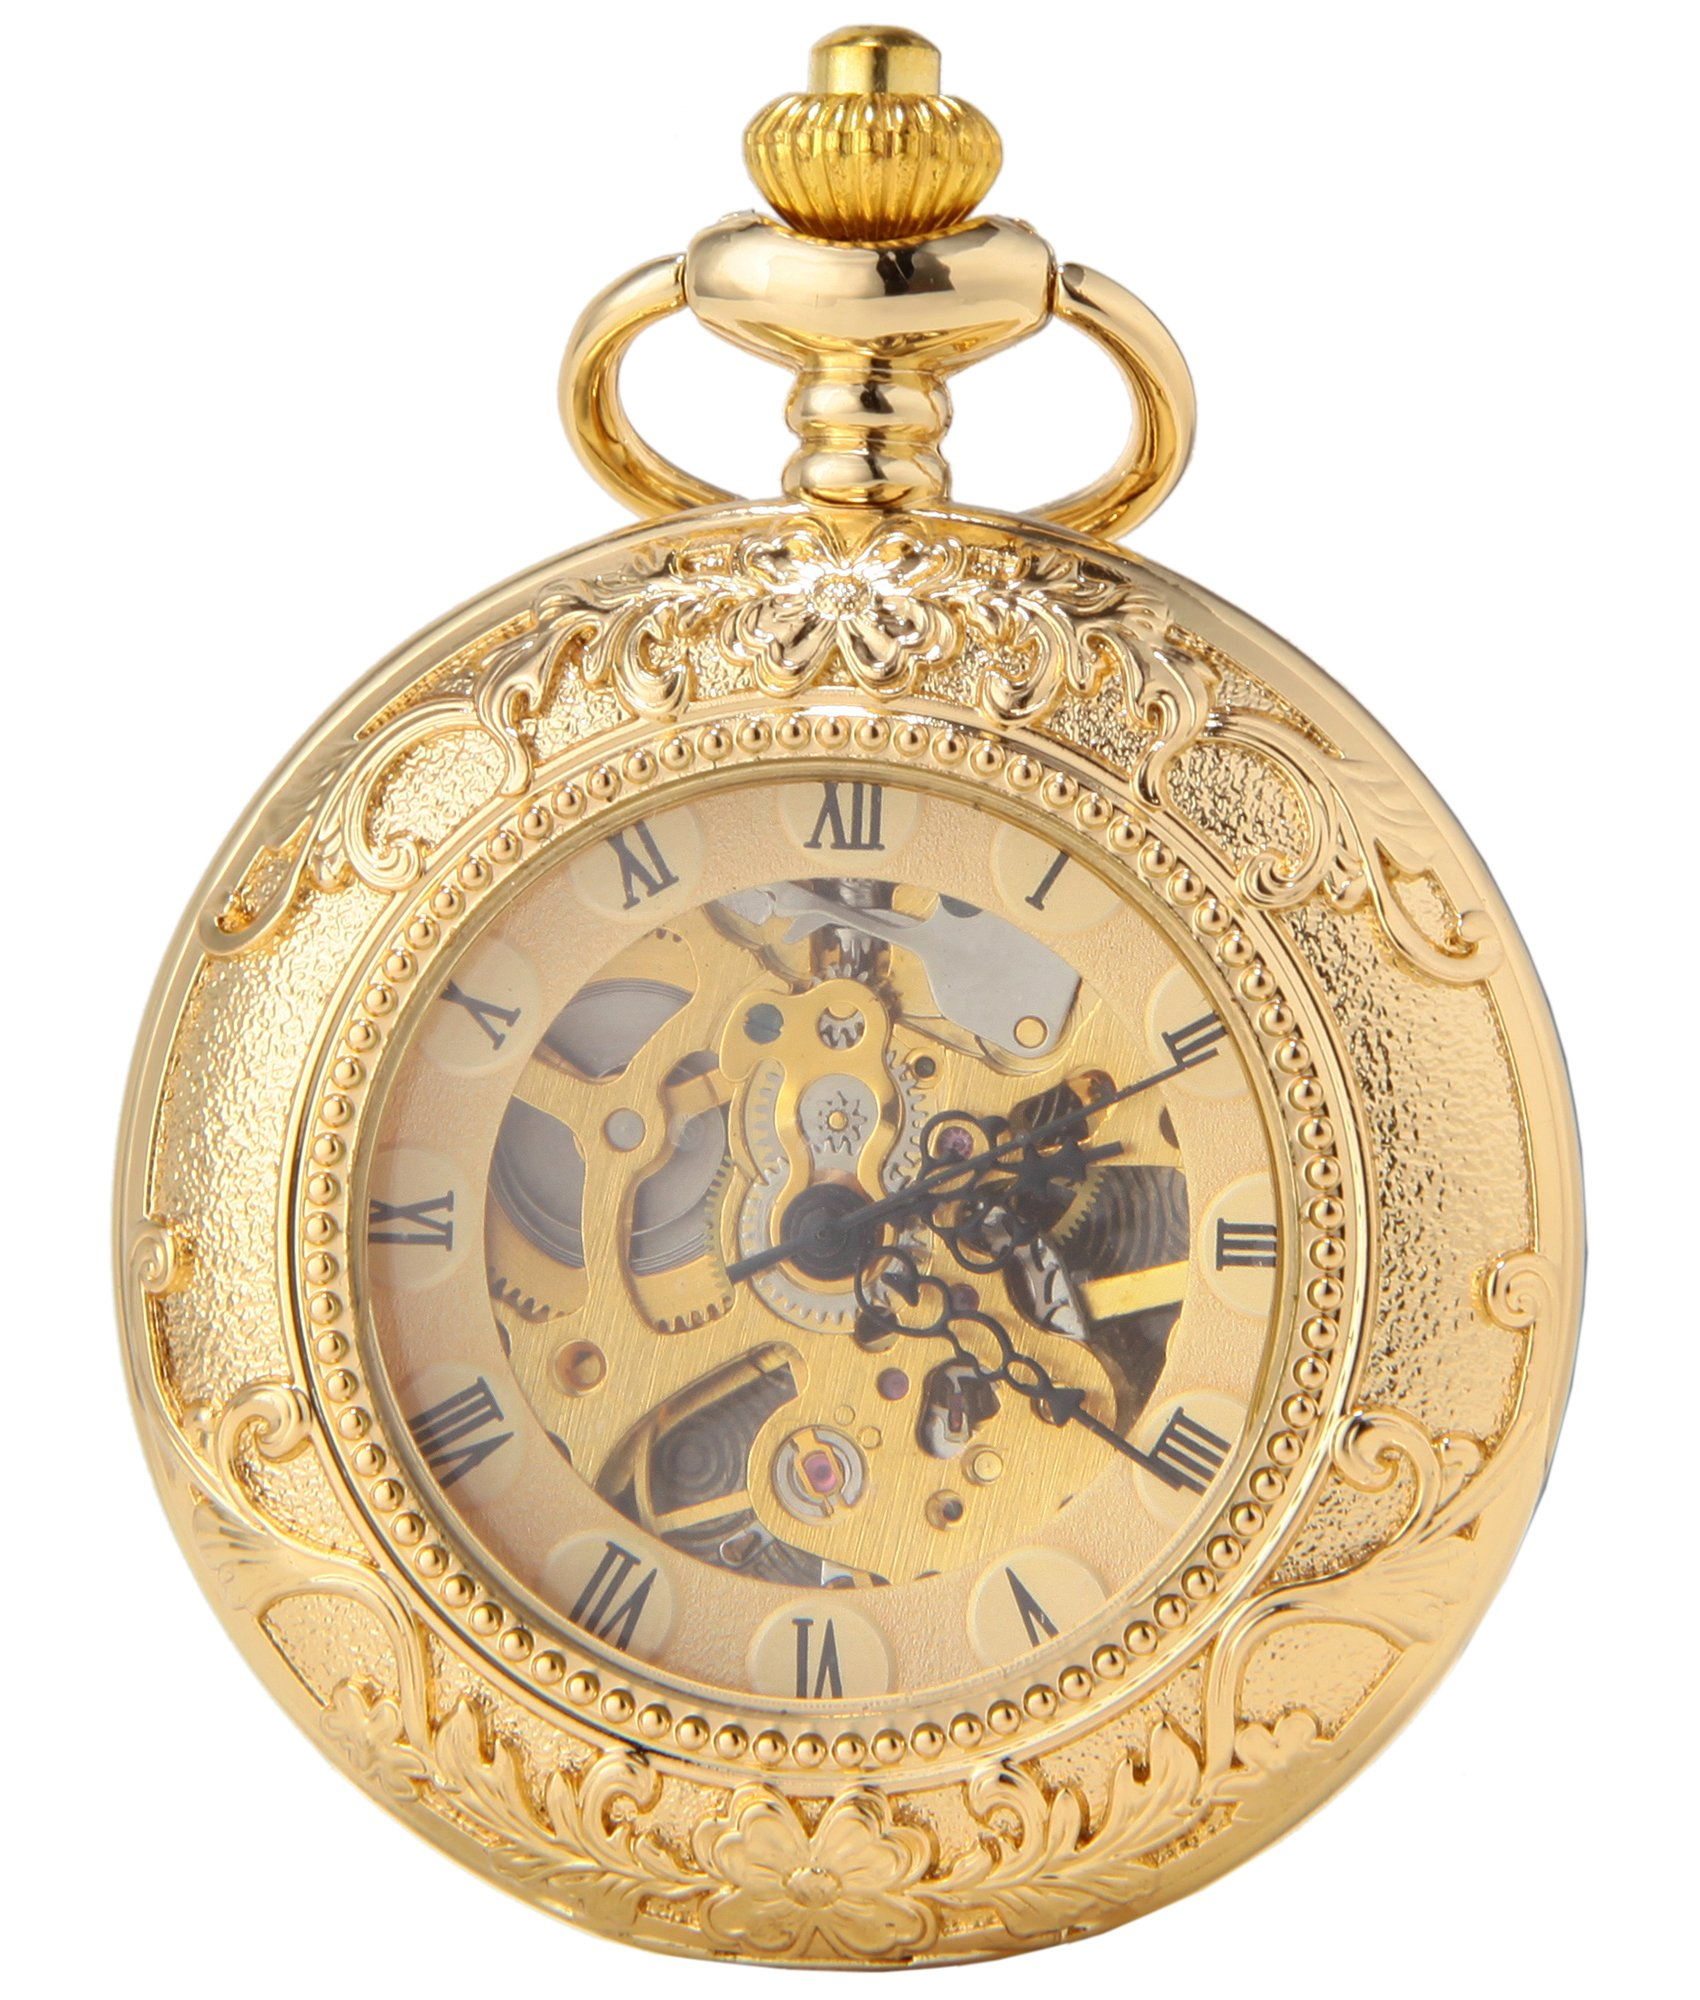 SEWOR Business Double Open Skeleton Pocket Watch Mechanical Hand Wind Movement Full Hunter Gift (Gold Magnifier)